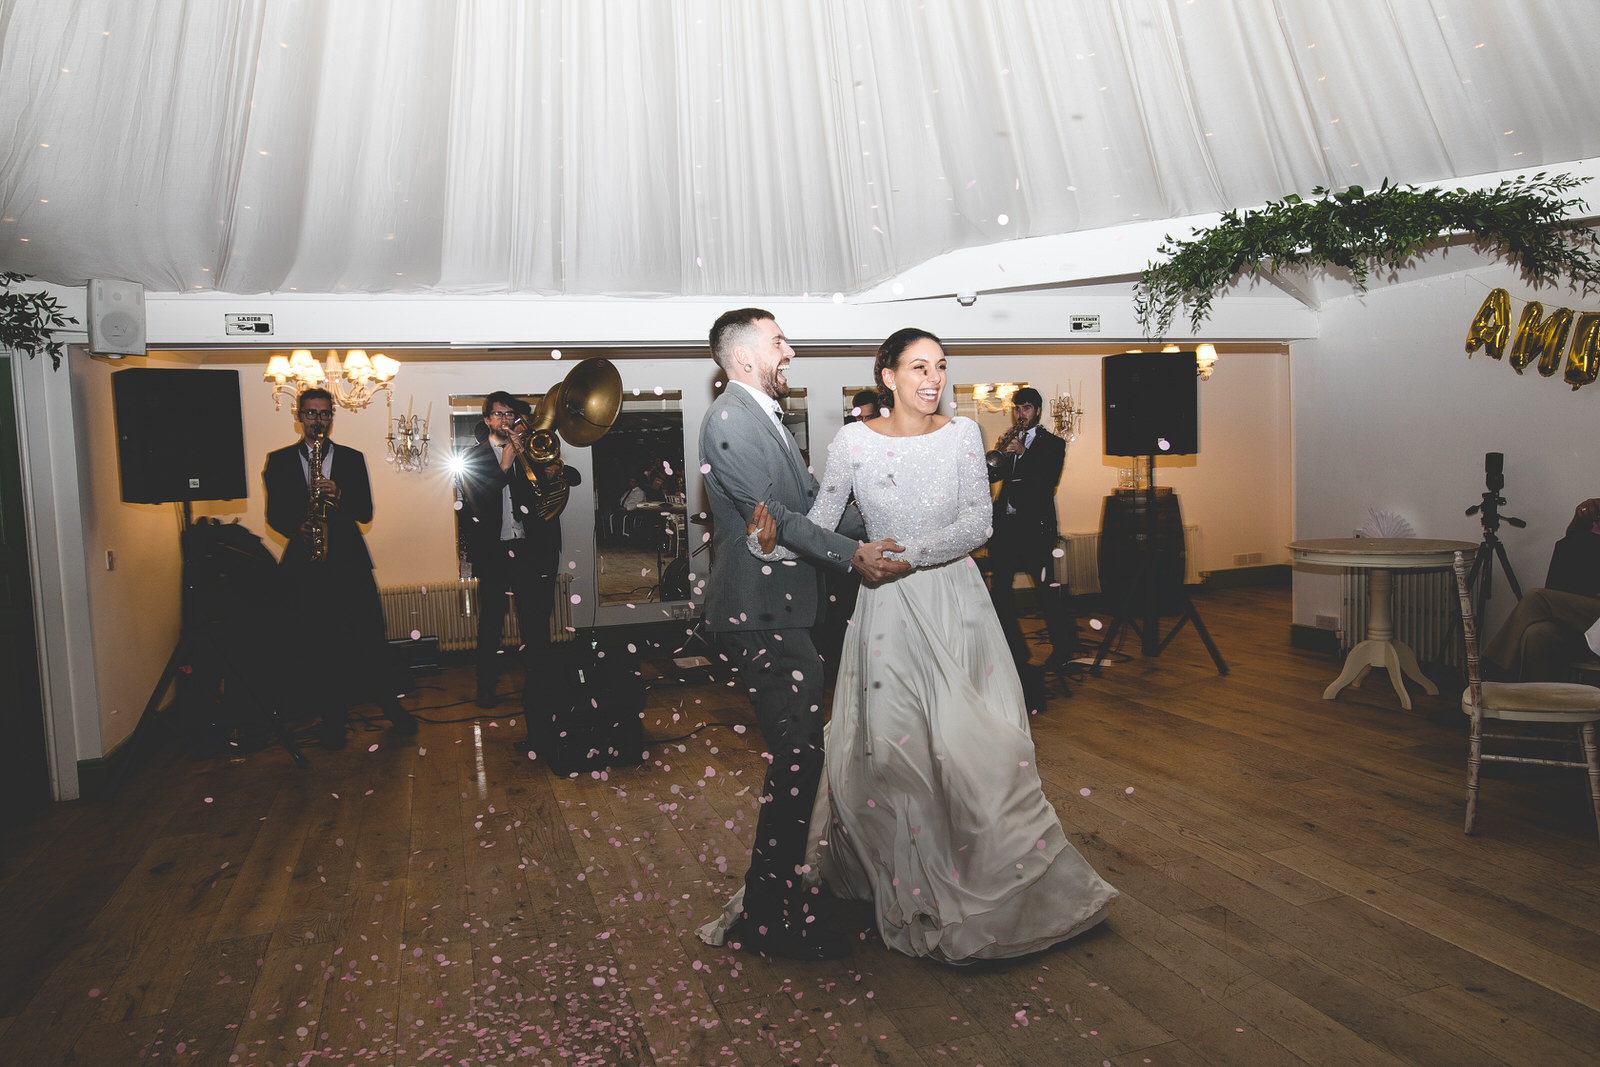 Confetti throw at first dance